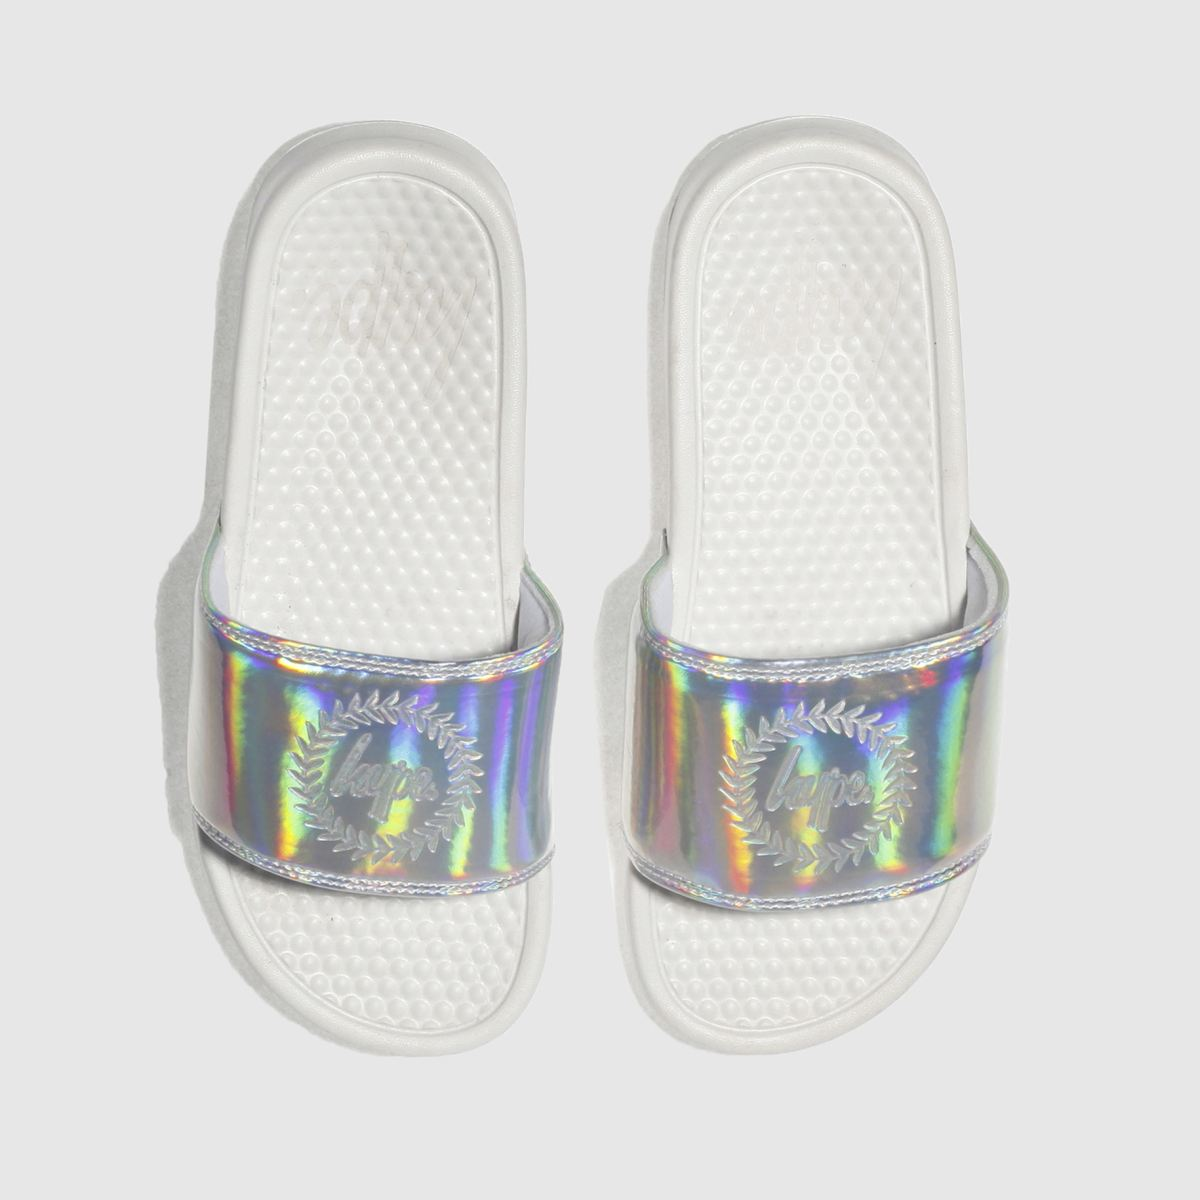 Hype Hype Silver Holographic Slider Sandals